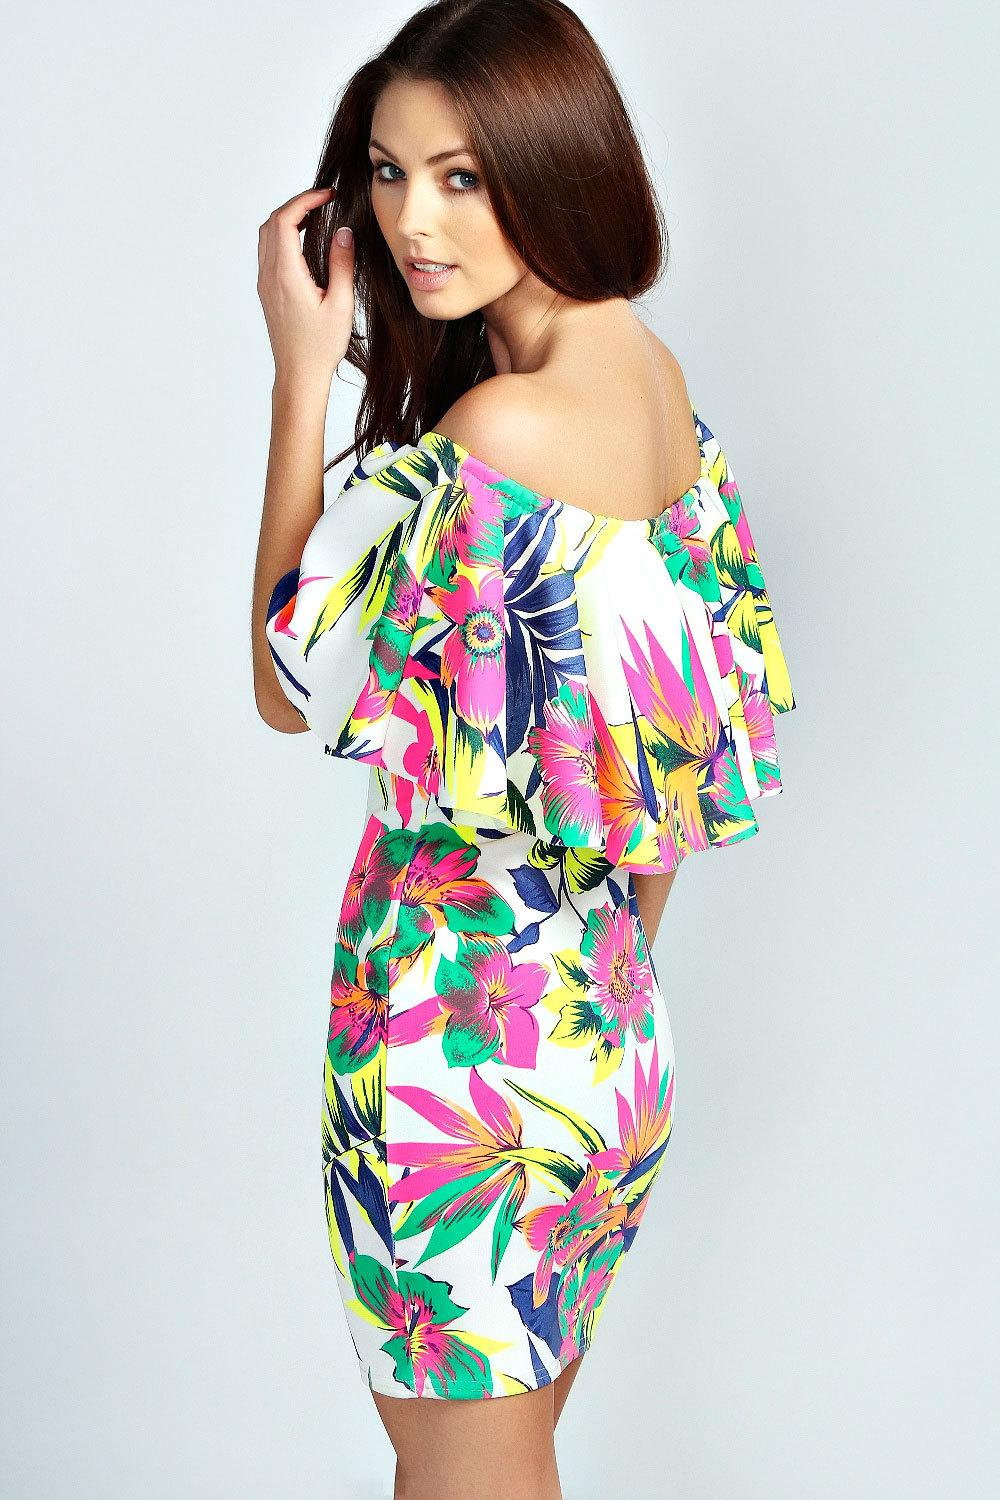 New 2014 Tropical Pattern Frill Top Bodycon Print Dress